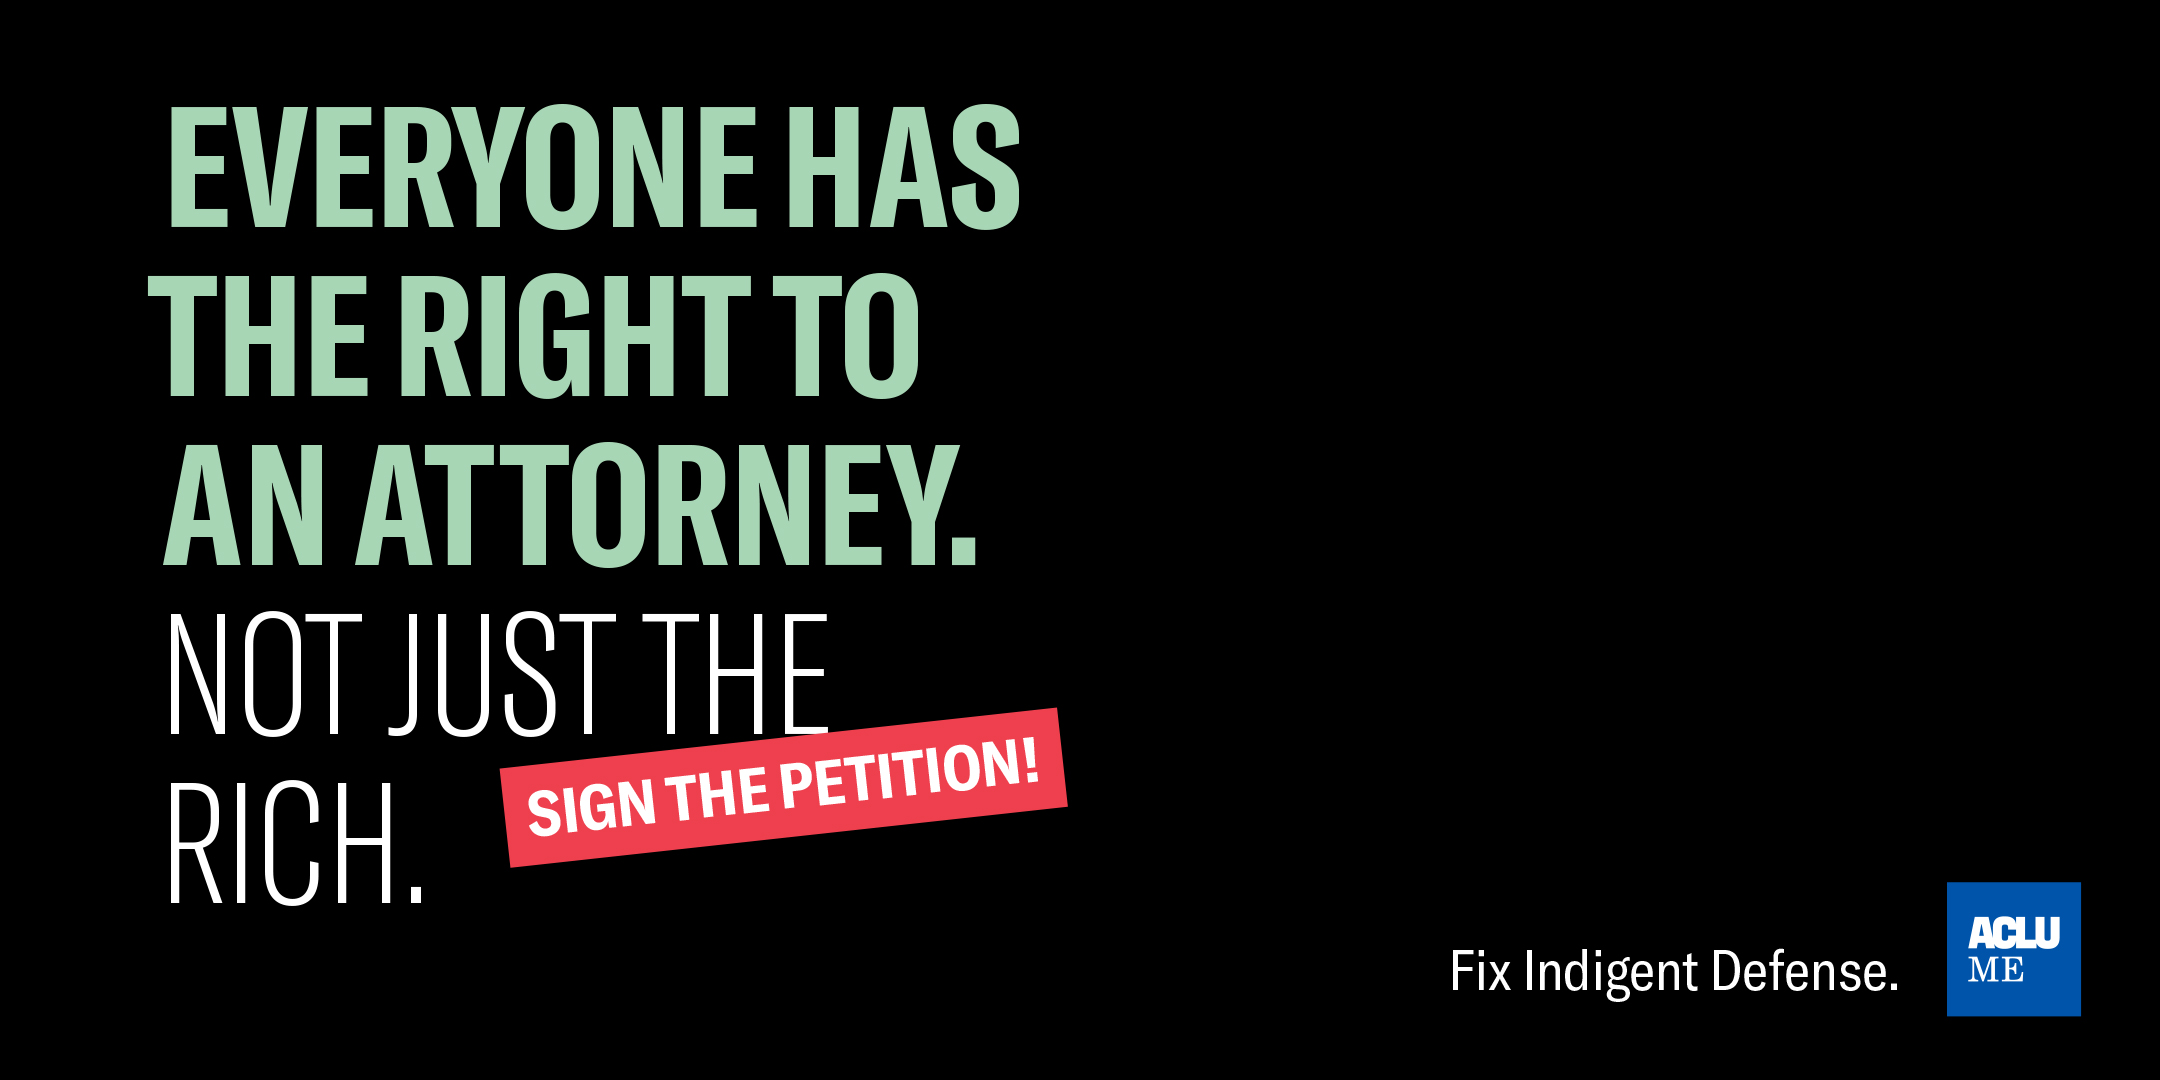 Everyone has the right to an attorney. Not just the rich.